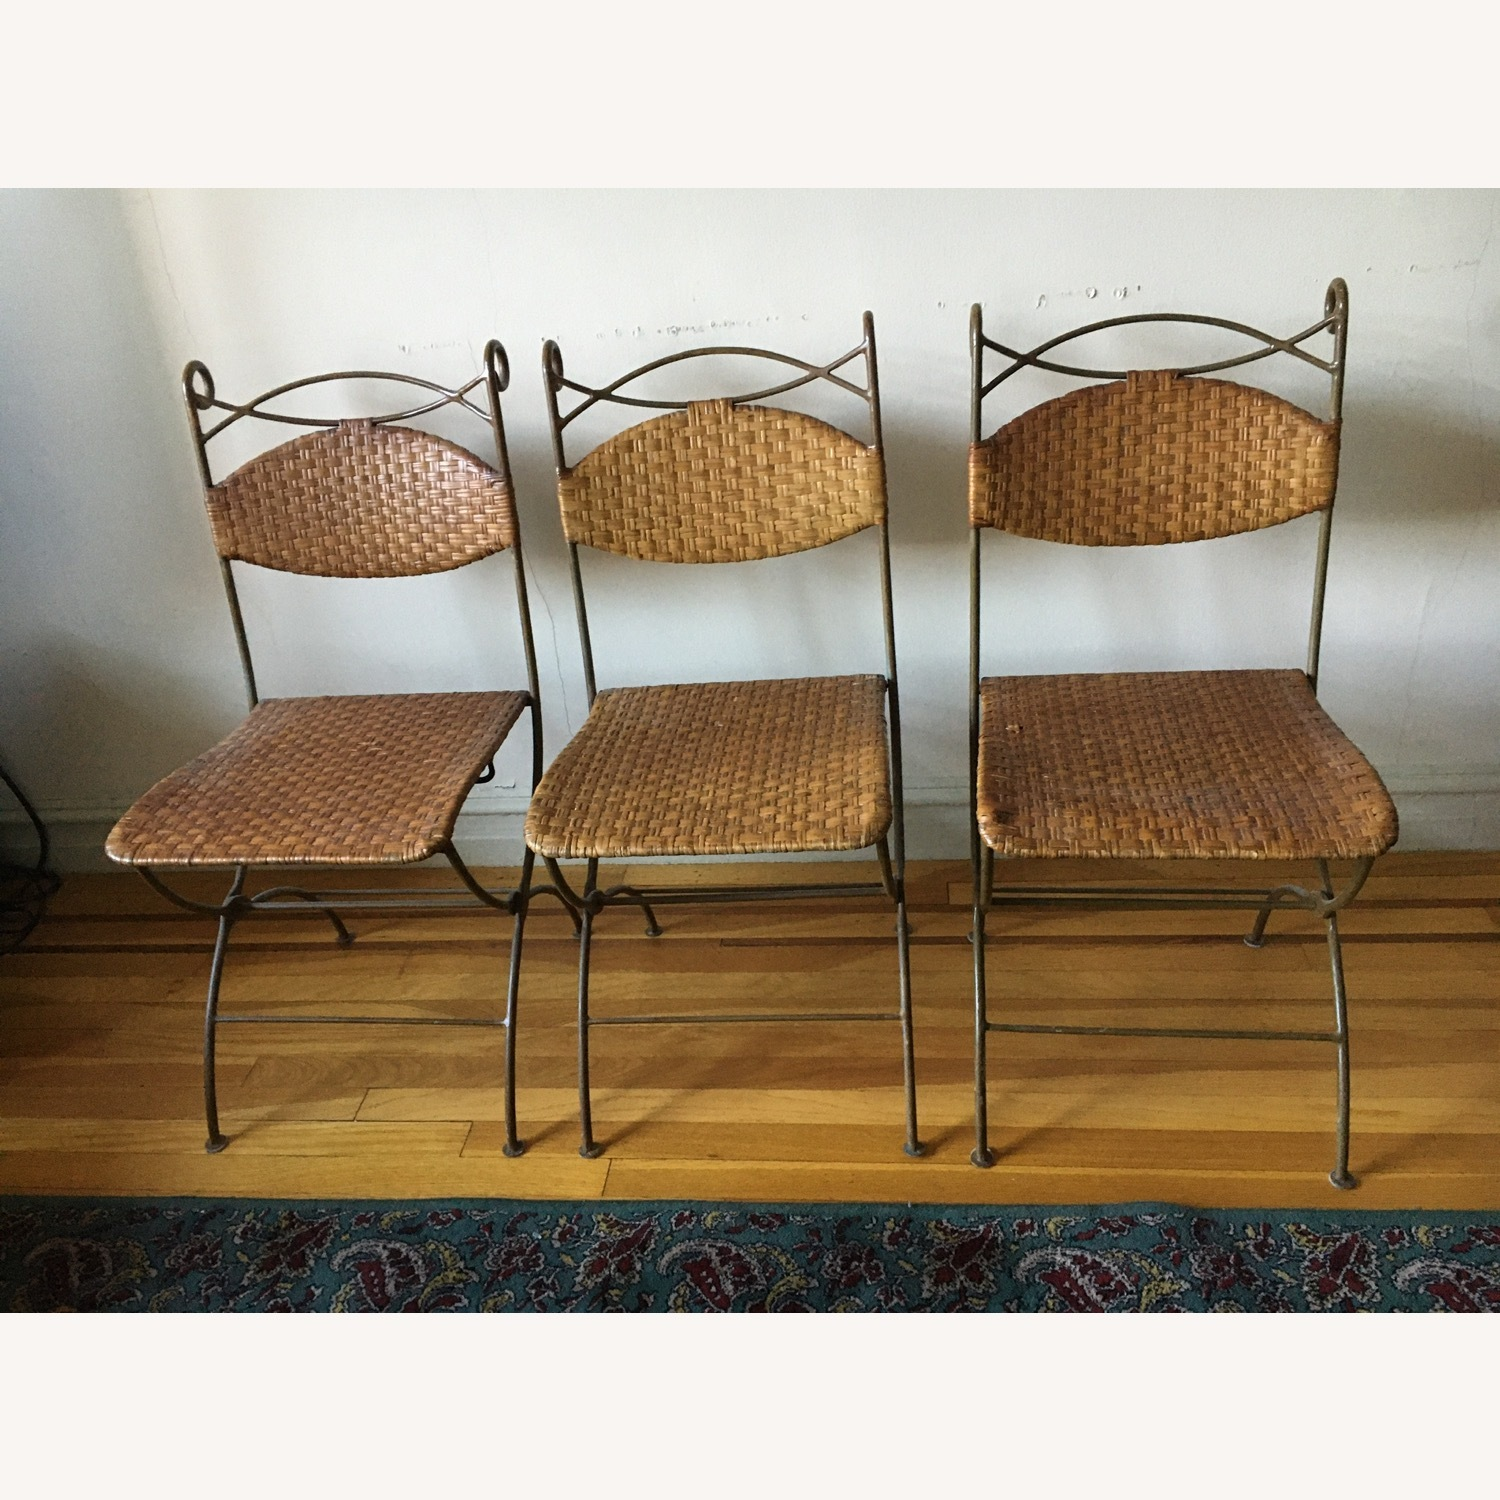 Metal and Rattan Folding Chairs - image-1